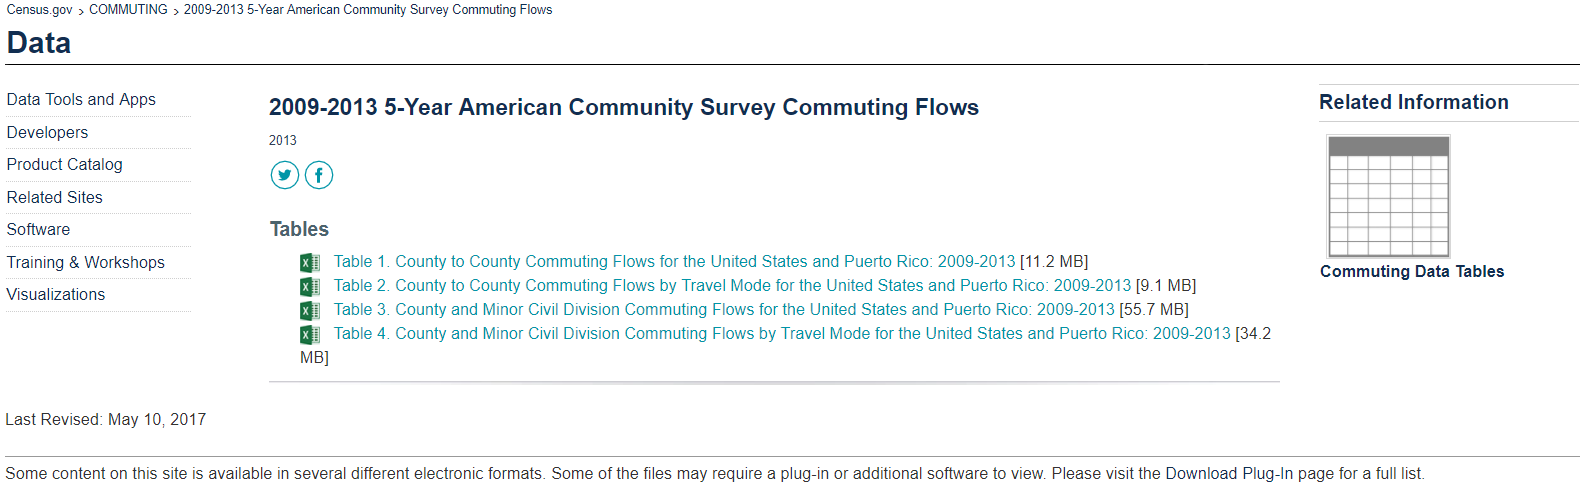 2009-2013 American Community Survey Commuting Flows